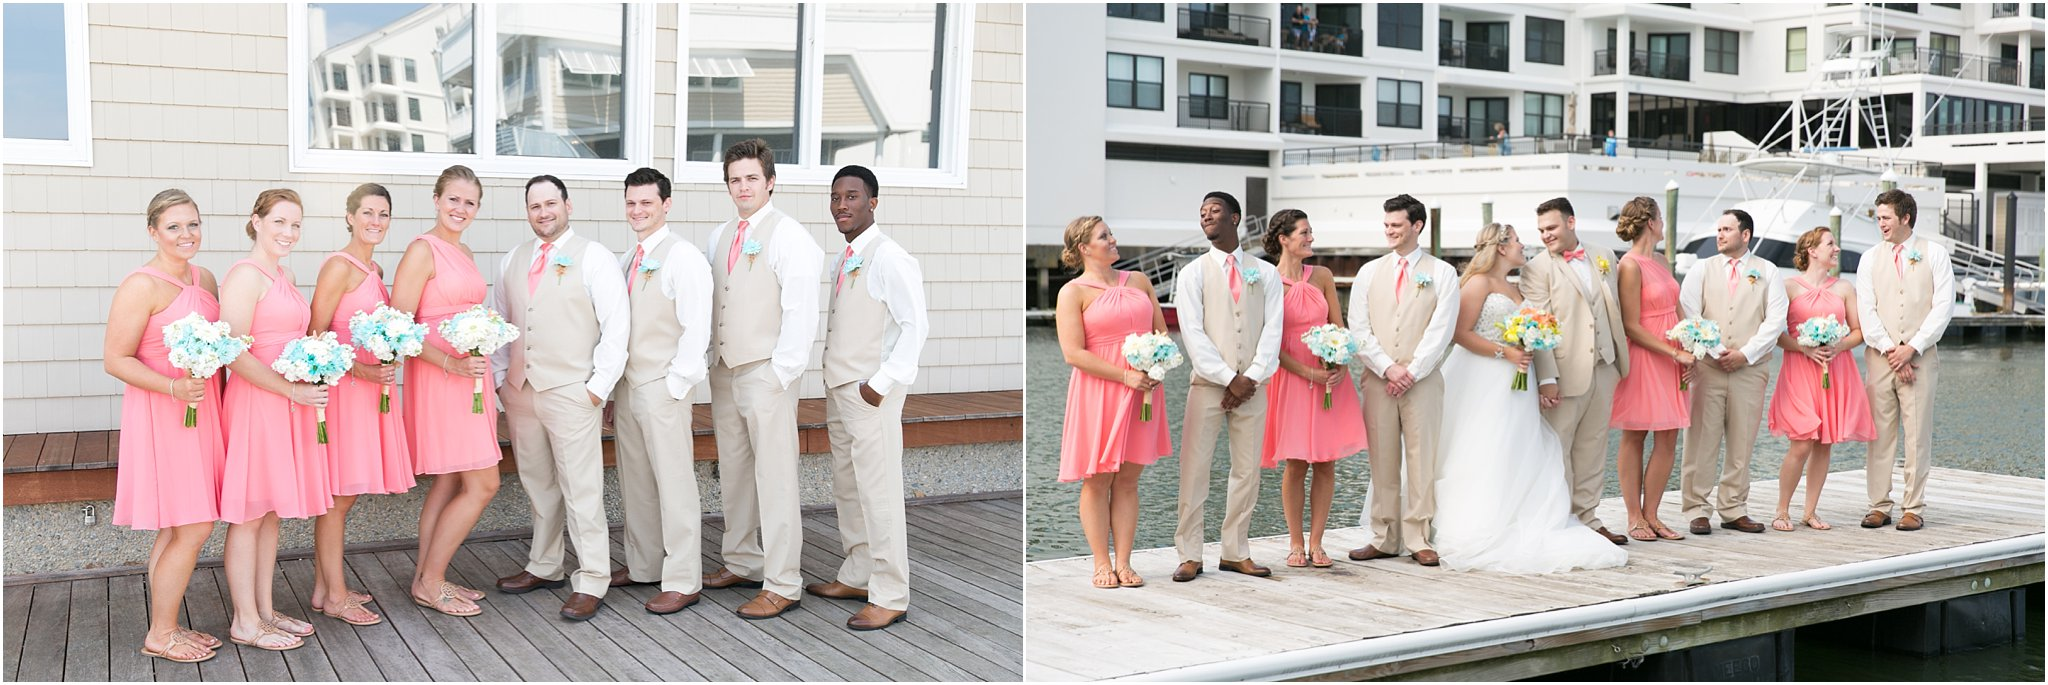 jessica_ryan_photography_virginia_beach_water_tabe_wedding_vera_wang_wedding_dress_0687